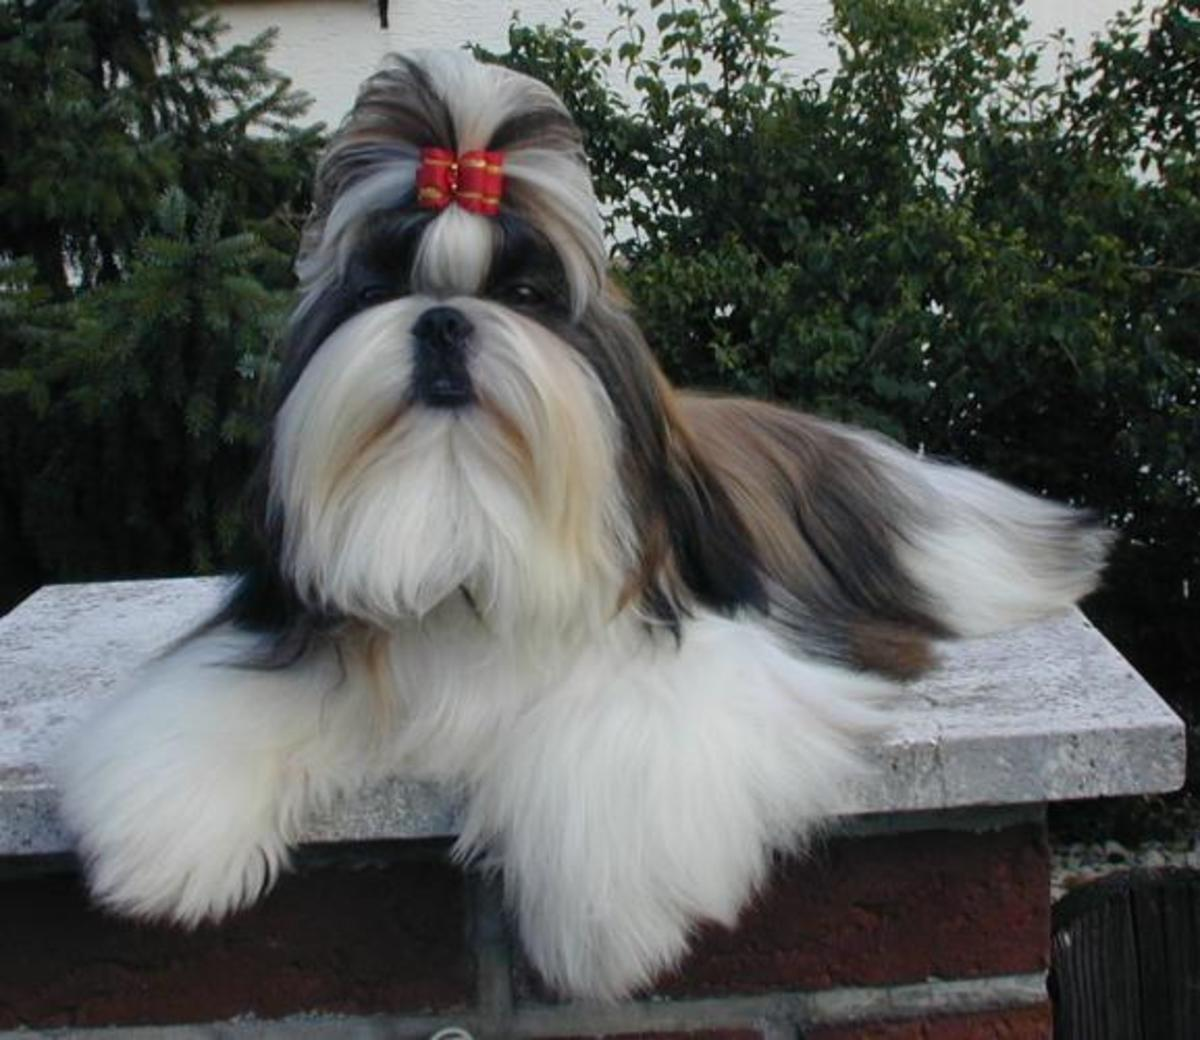 Purebred Shih Tzu Dog- Malshi crosses get some of their coloring and the shape of their face from their Shih Tzu lineage